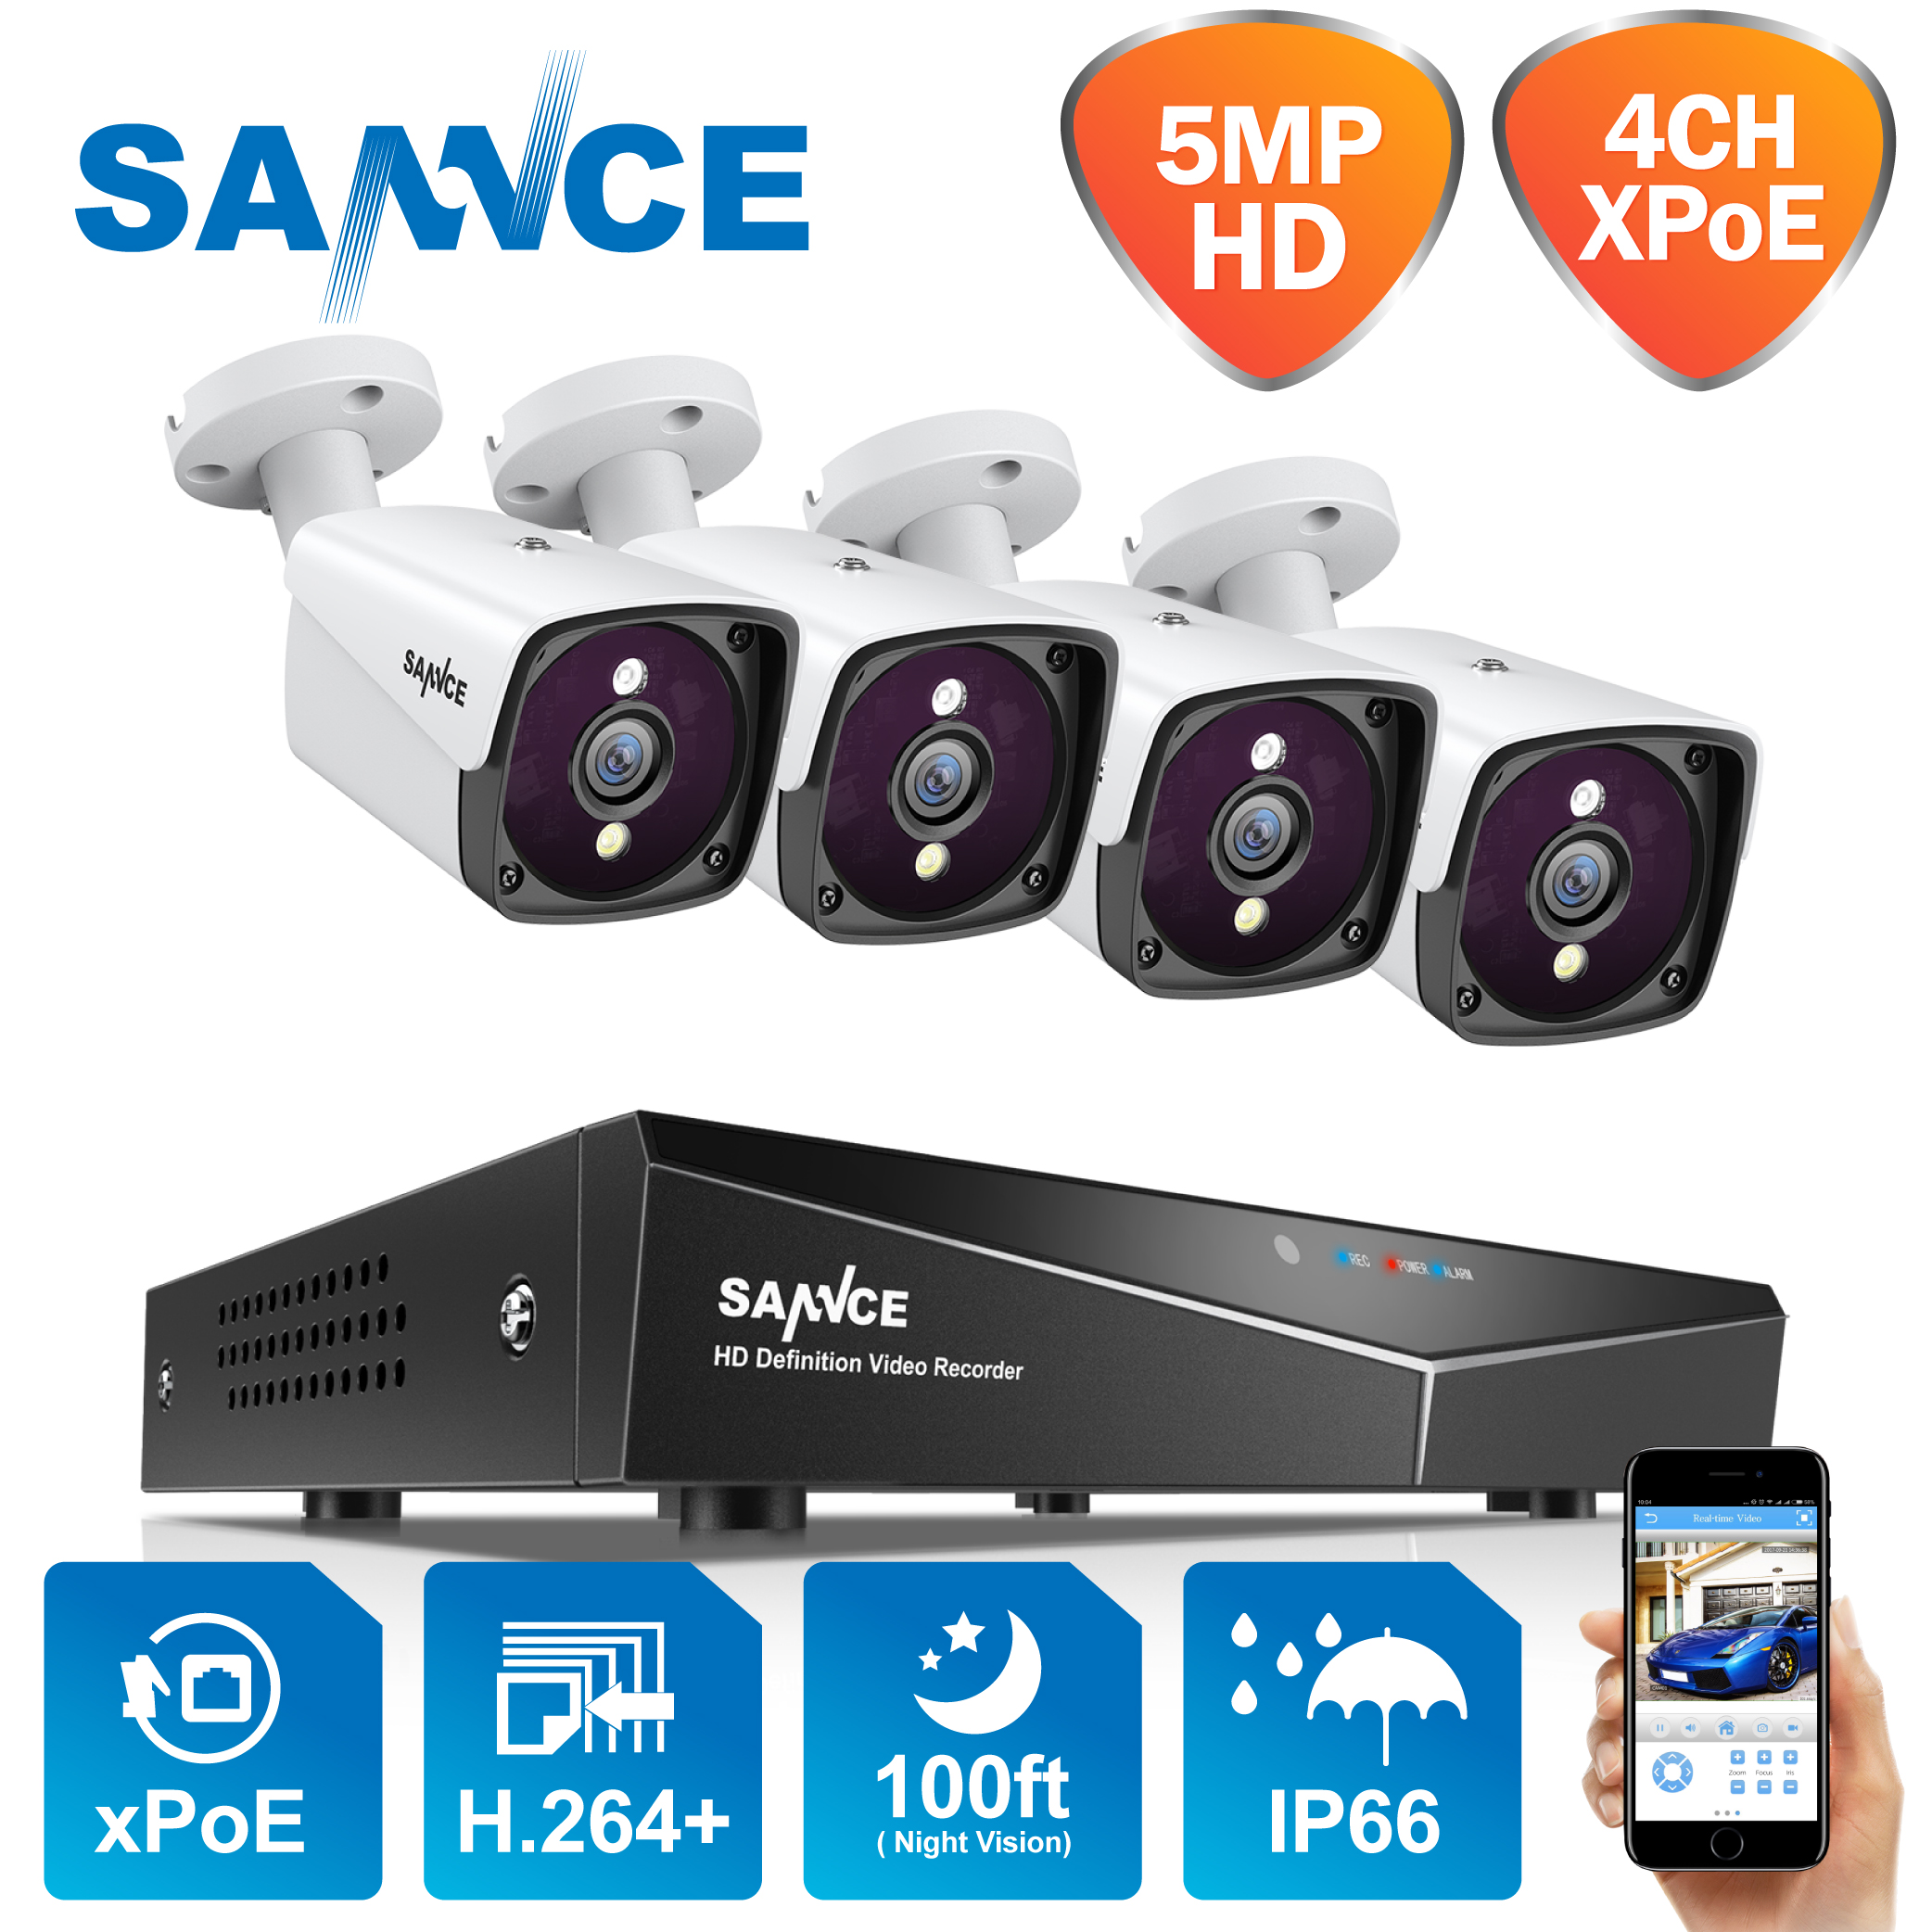 SANNCE 4CH 5MP POE Video Security System 5MP Outdoor Weatherproof Infrared Night Vision IP Camera Wireless Surveillance CCTV Kit image